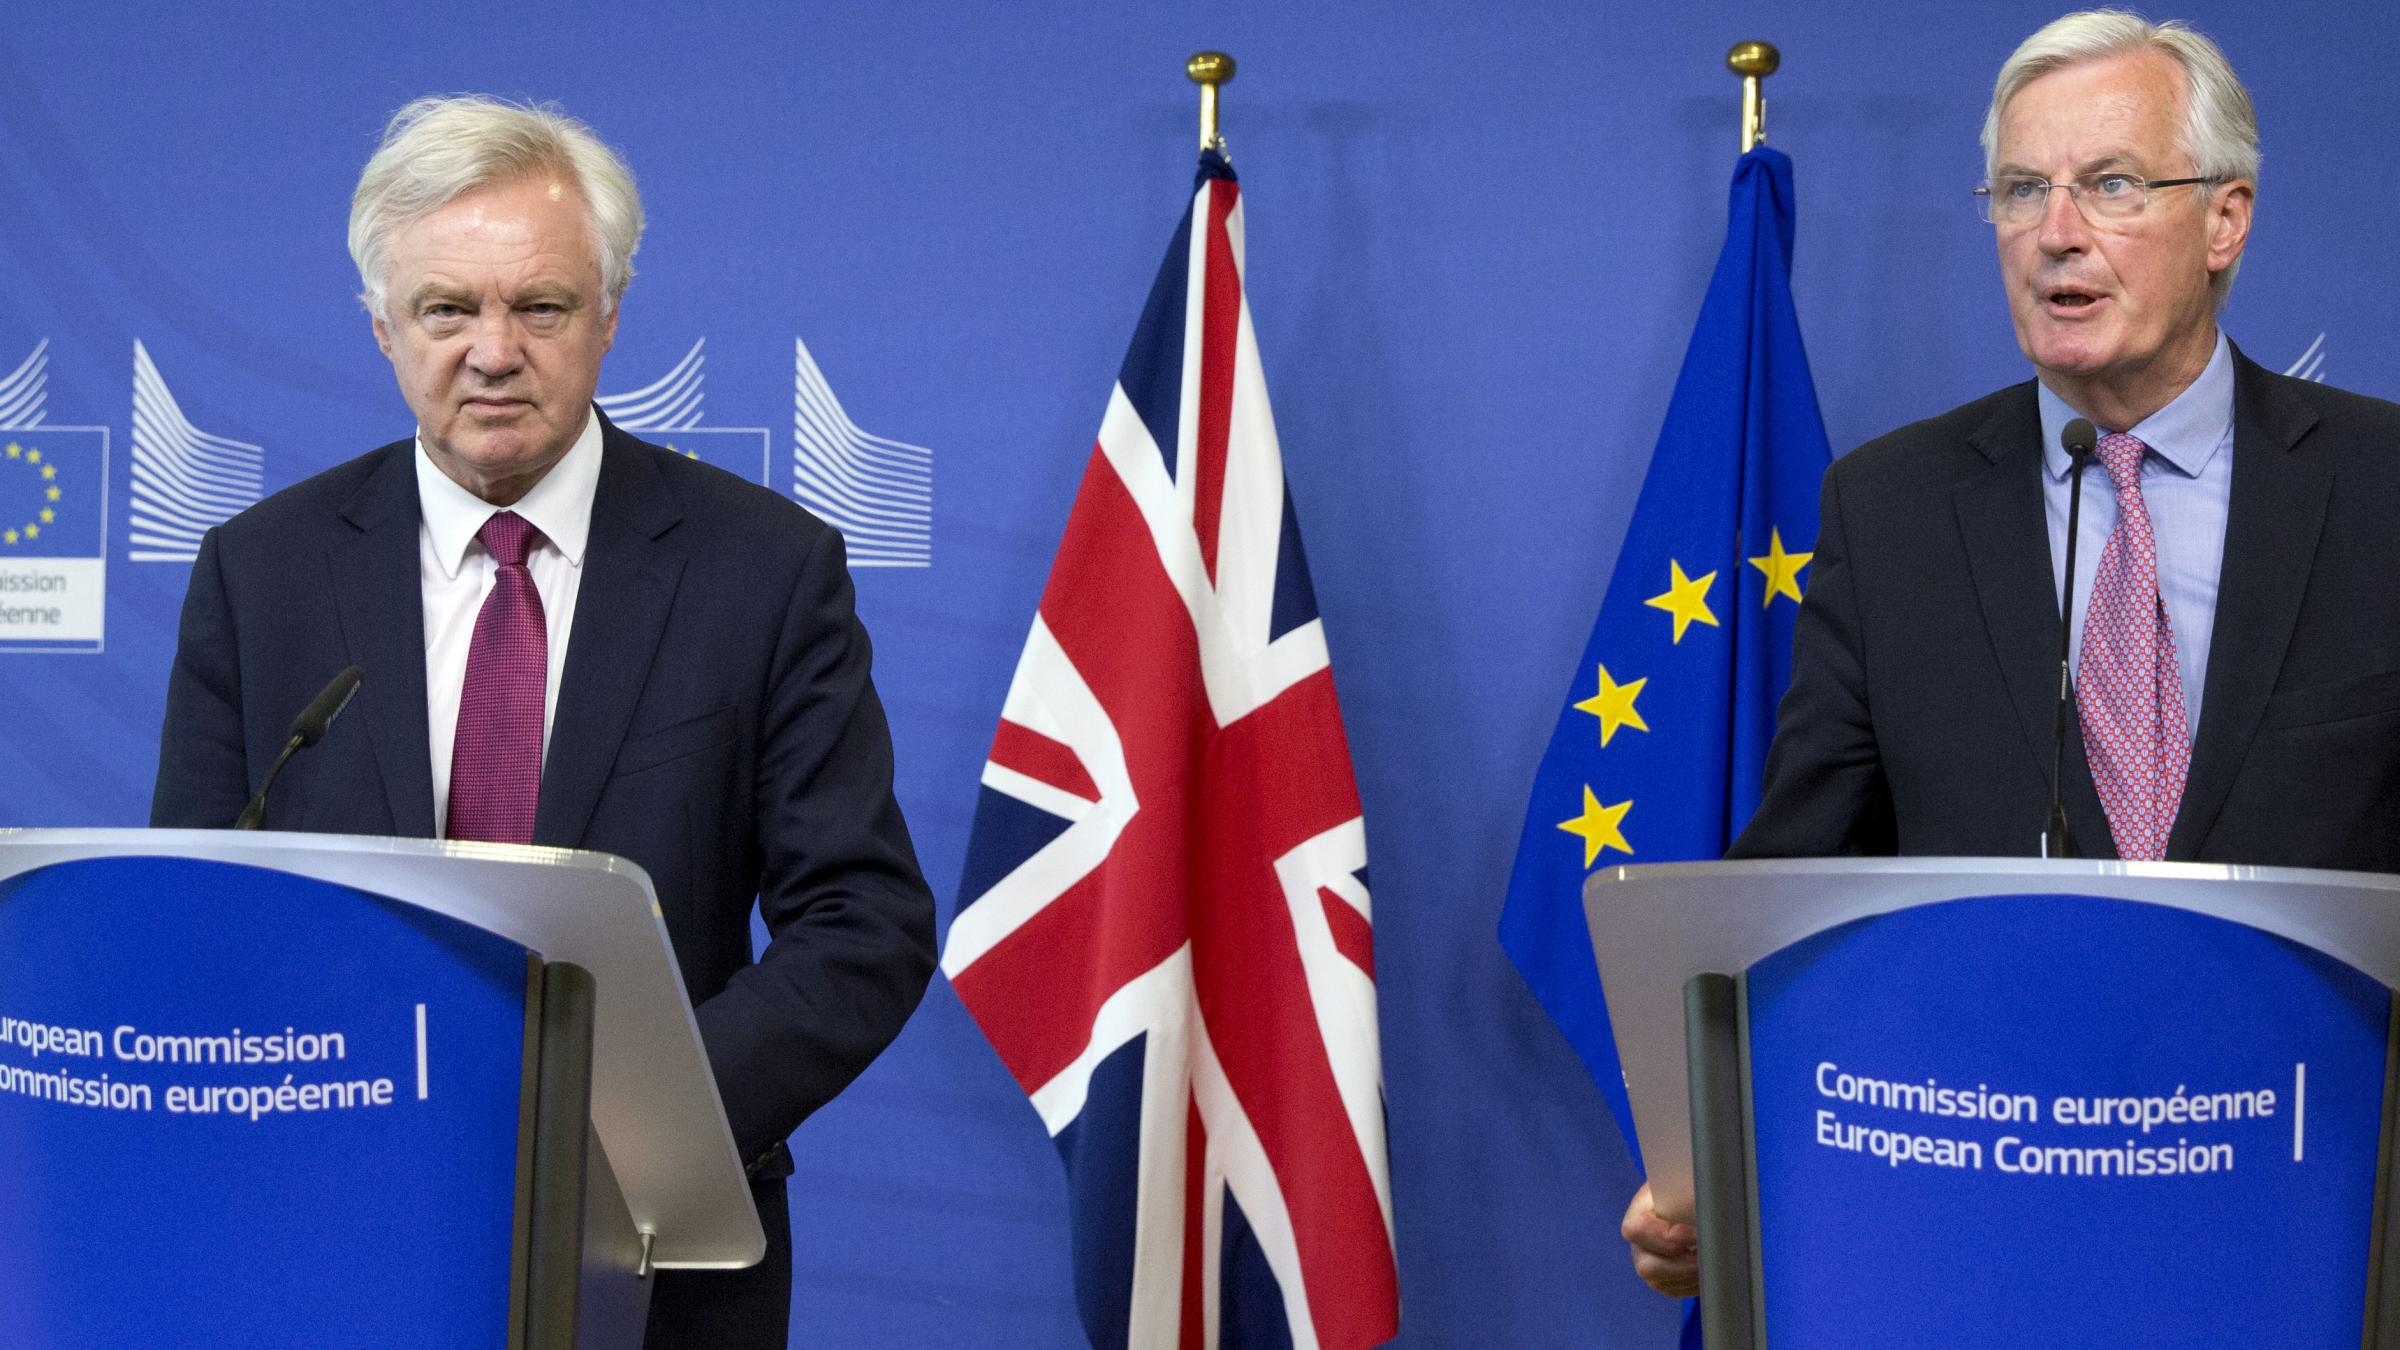 Brexit talks to focus first on orderly exit